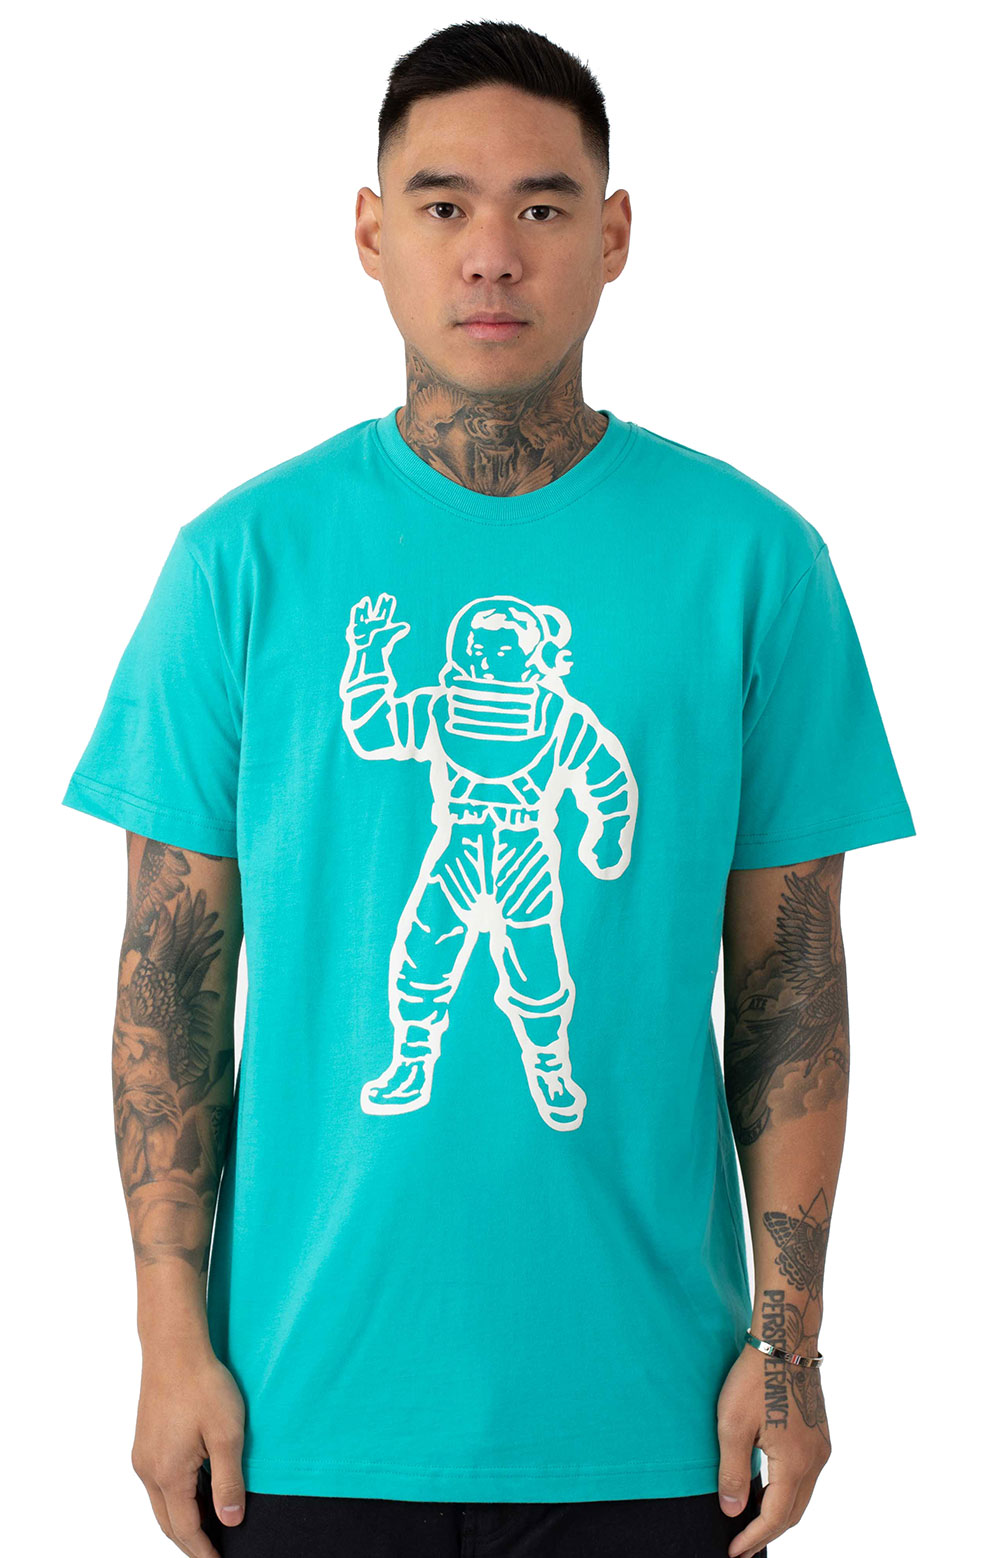 BB Puff Astronaut T-Shirt - Baltic